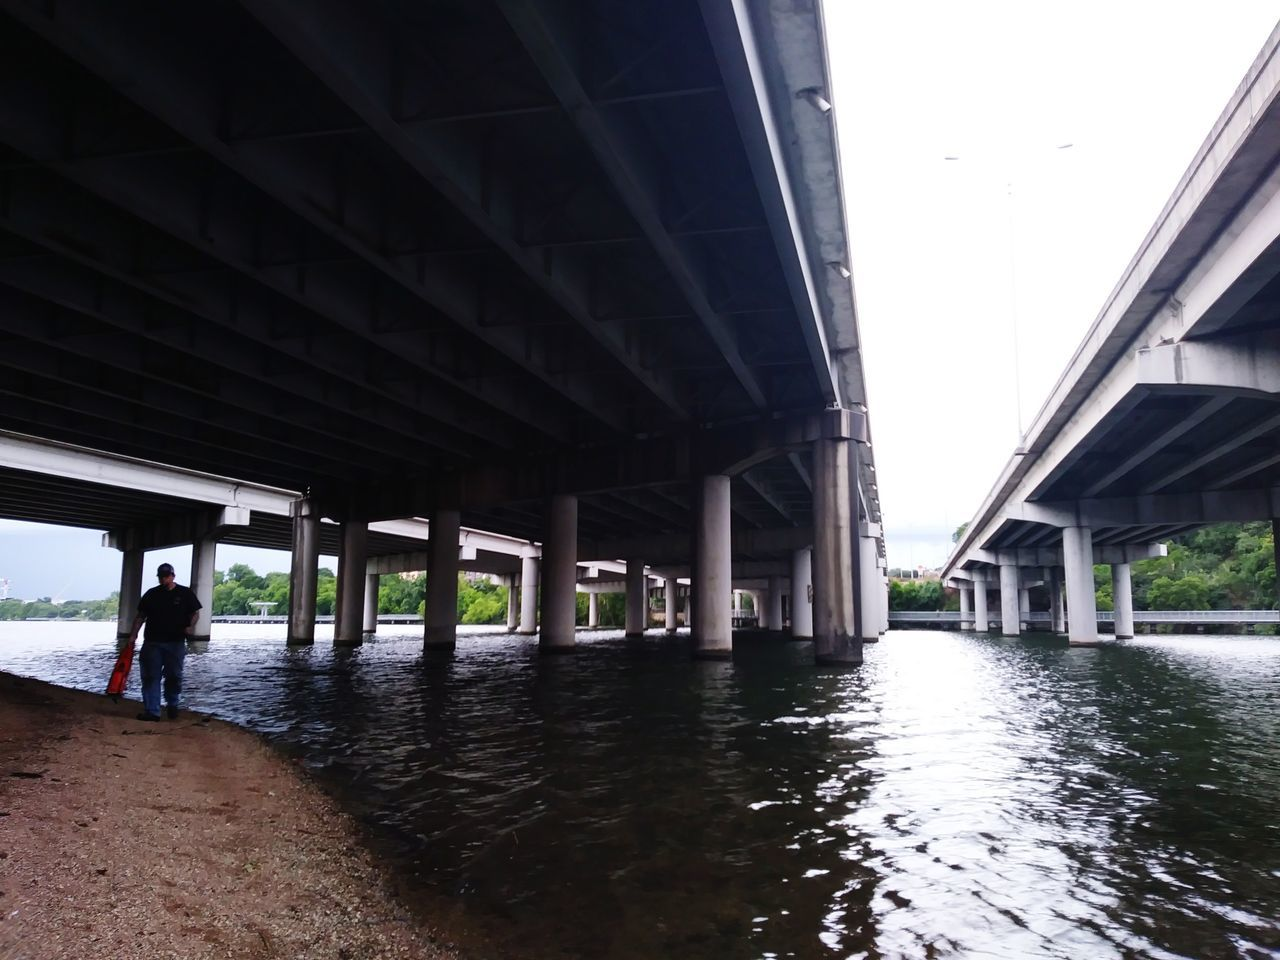 The Street Photographer - 2017 EyeEm Awards Austin Architecture City Austin,tx Underpass Ladybird Lake Rc Boat Festival Beach A Man And His Toys Under A Bridge RC Hobbies Outdoors Live For The Story